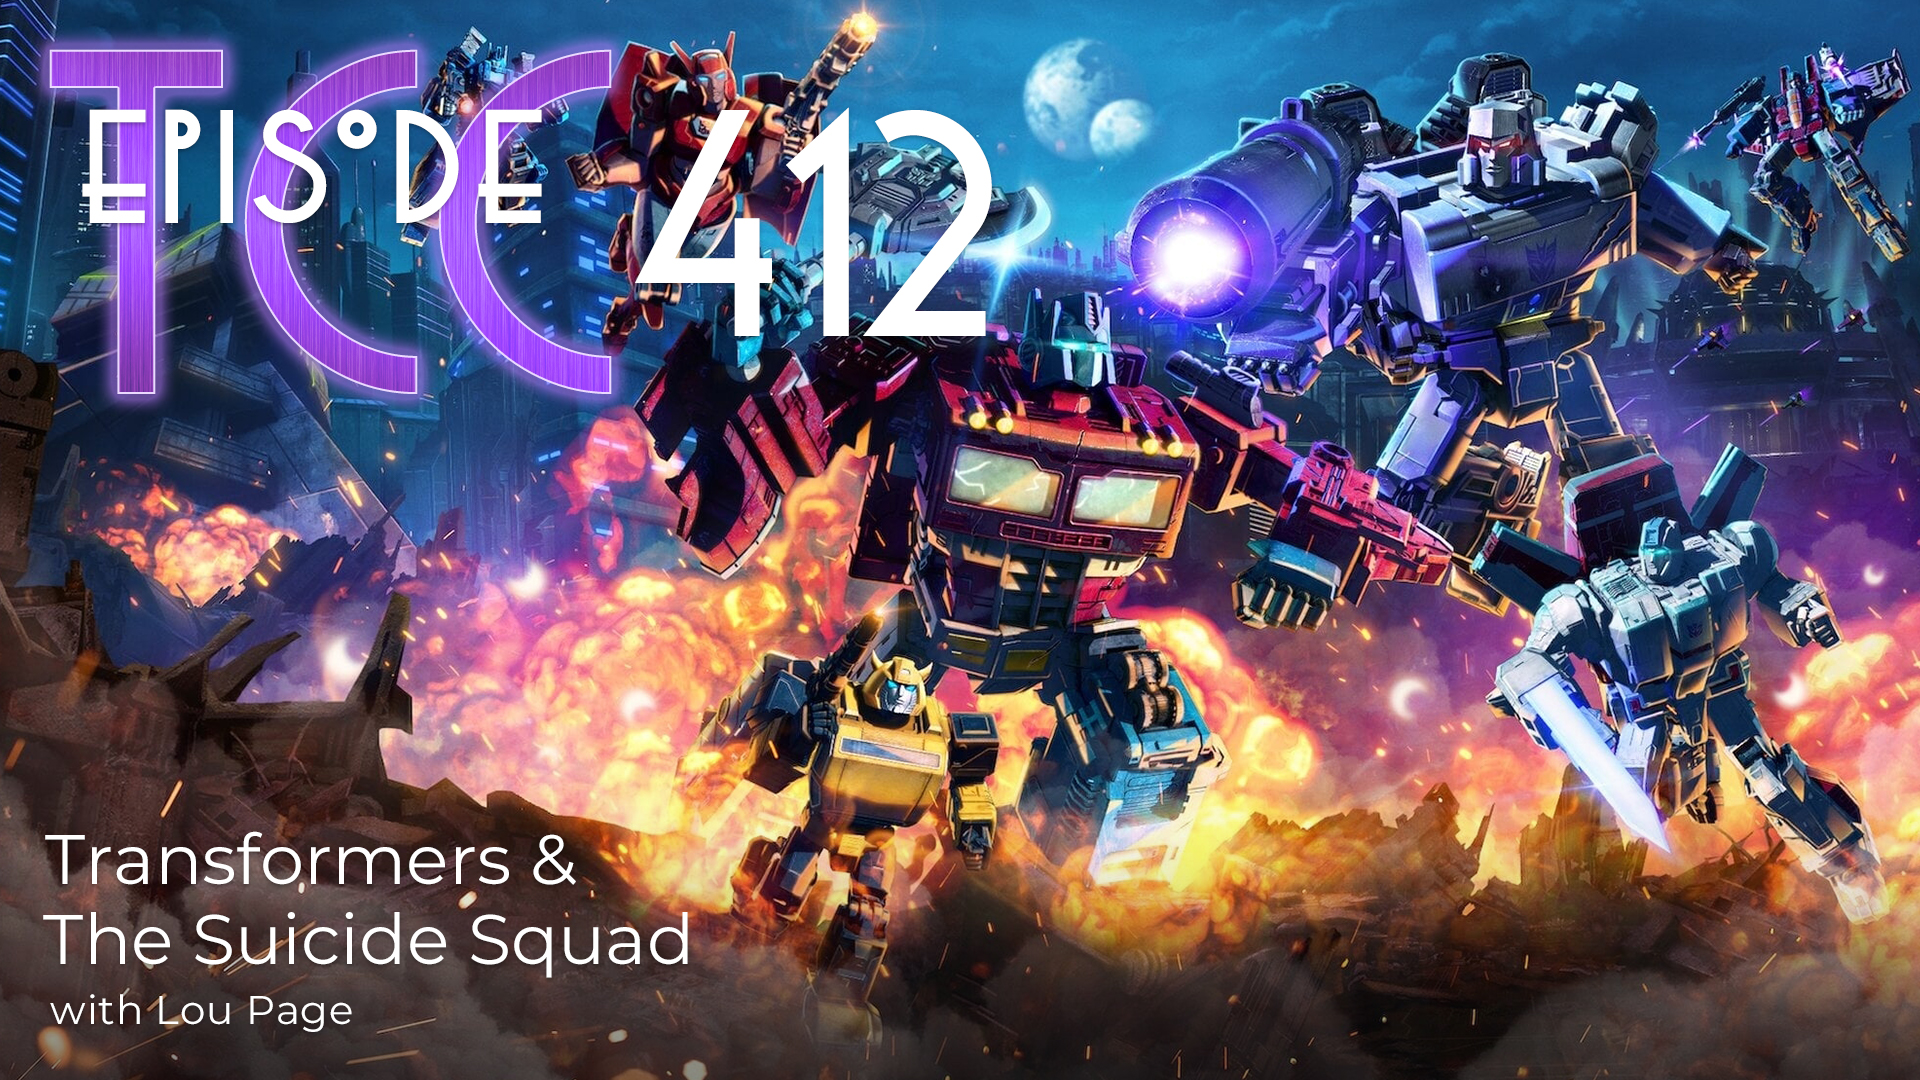 The Citadel Cafe 412: Transformers And The Suicide Squad